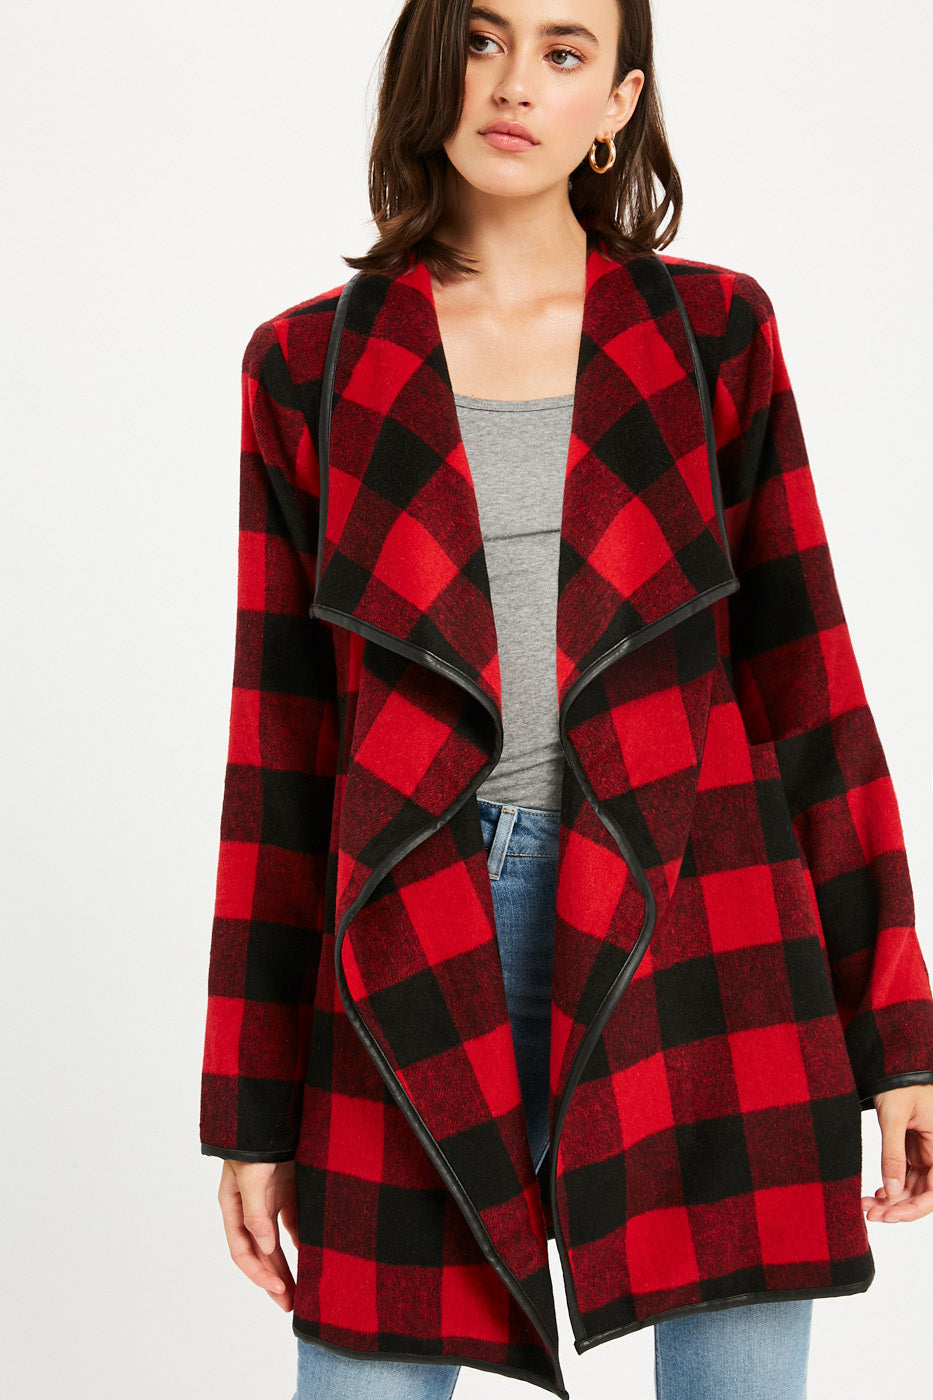 Buffalo Plaid Drape Front Jacket - Red Plaid